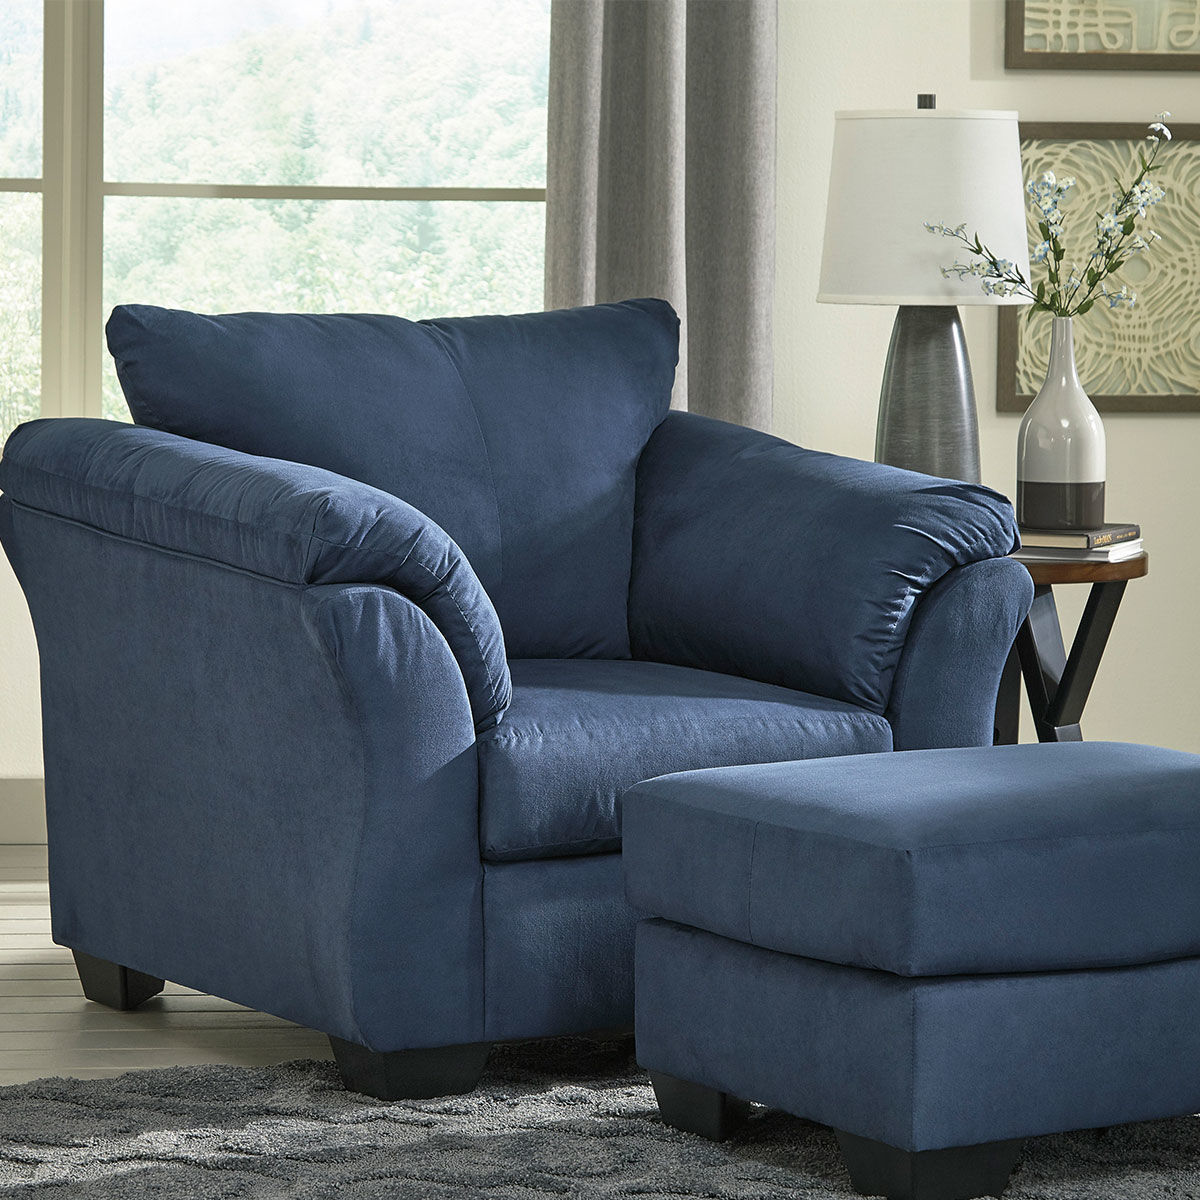 Picture of AUSTIN NAVY CHAIR